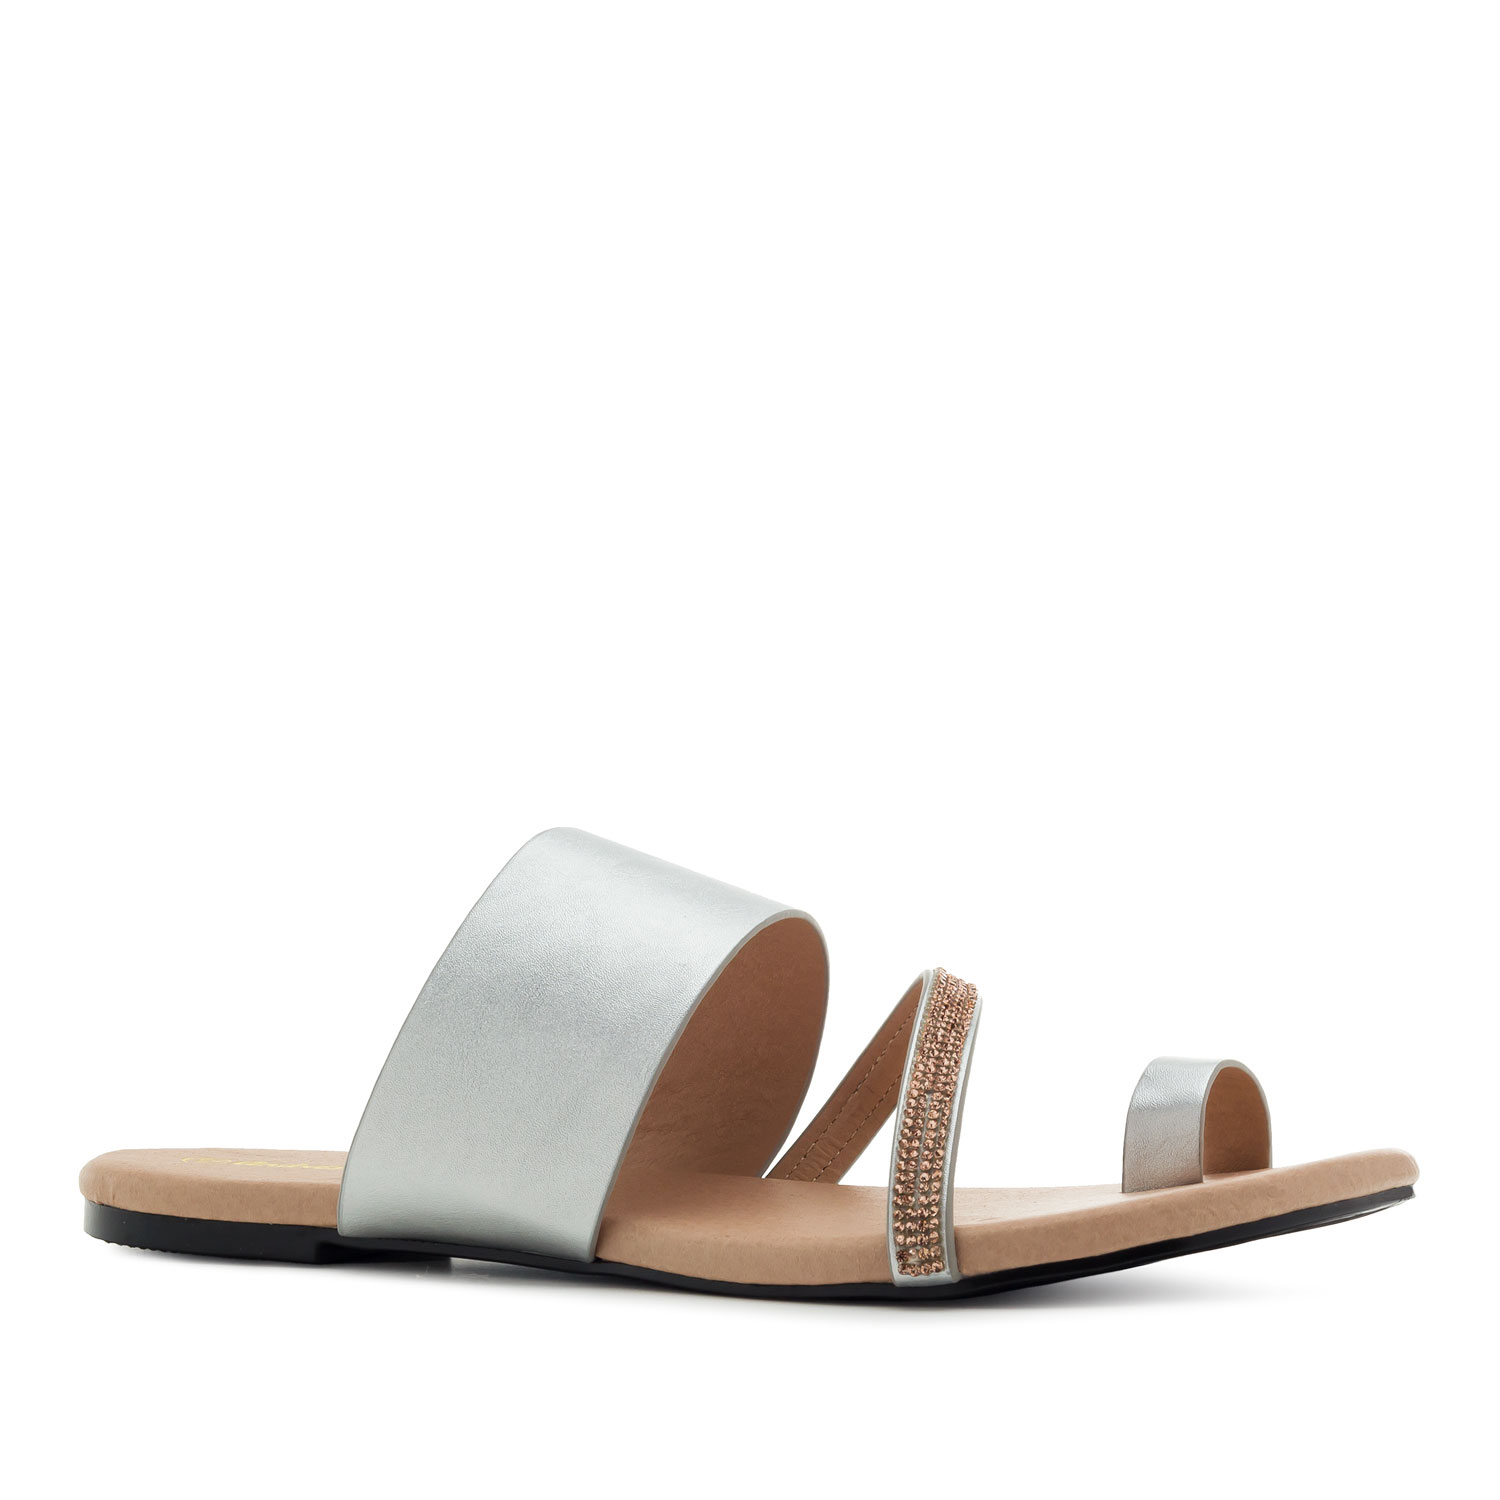 Toe Flat Sandals in Silver faux Leather